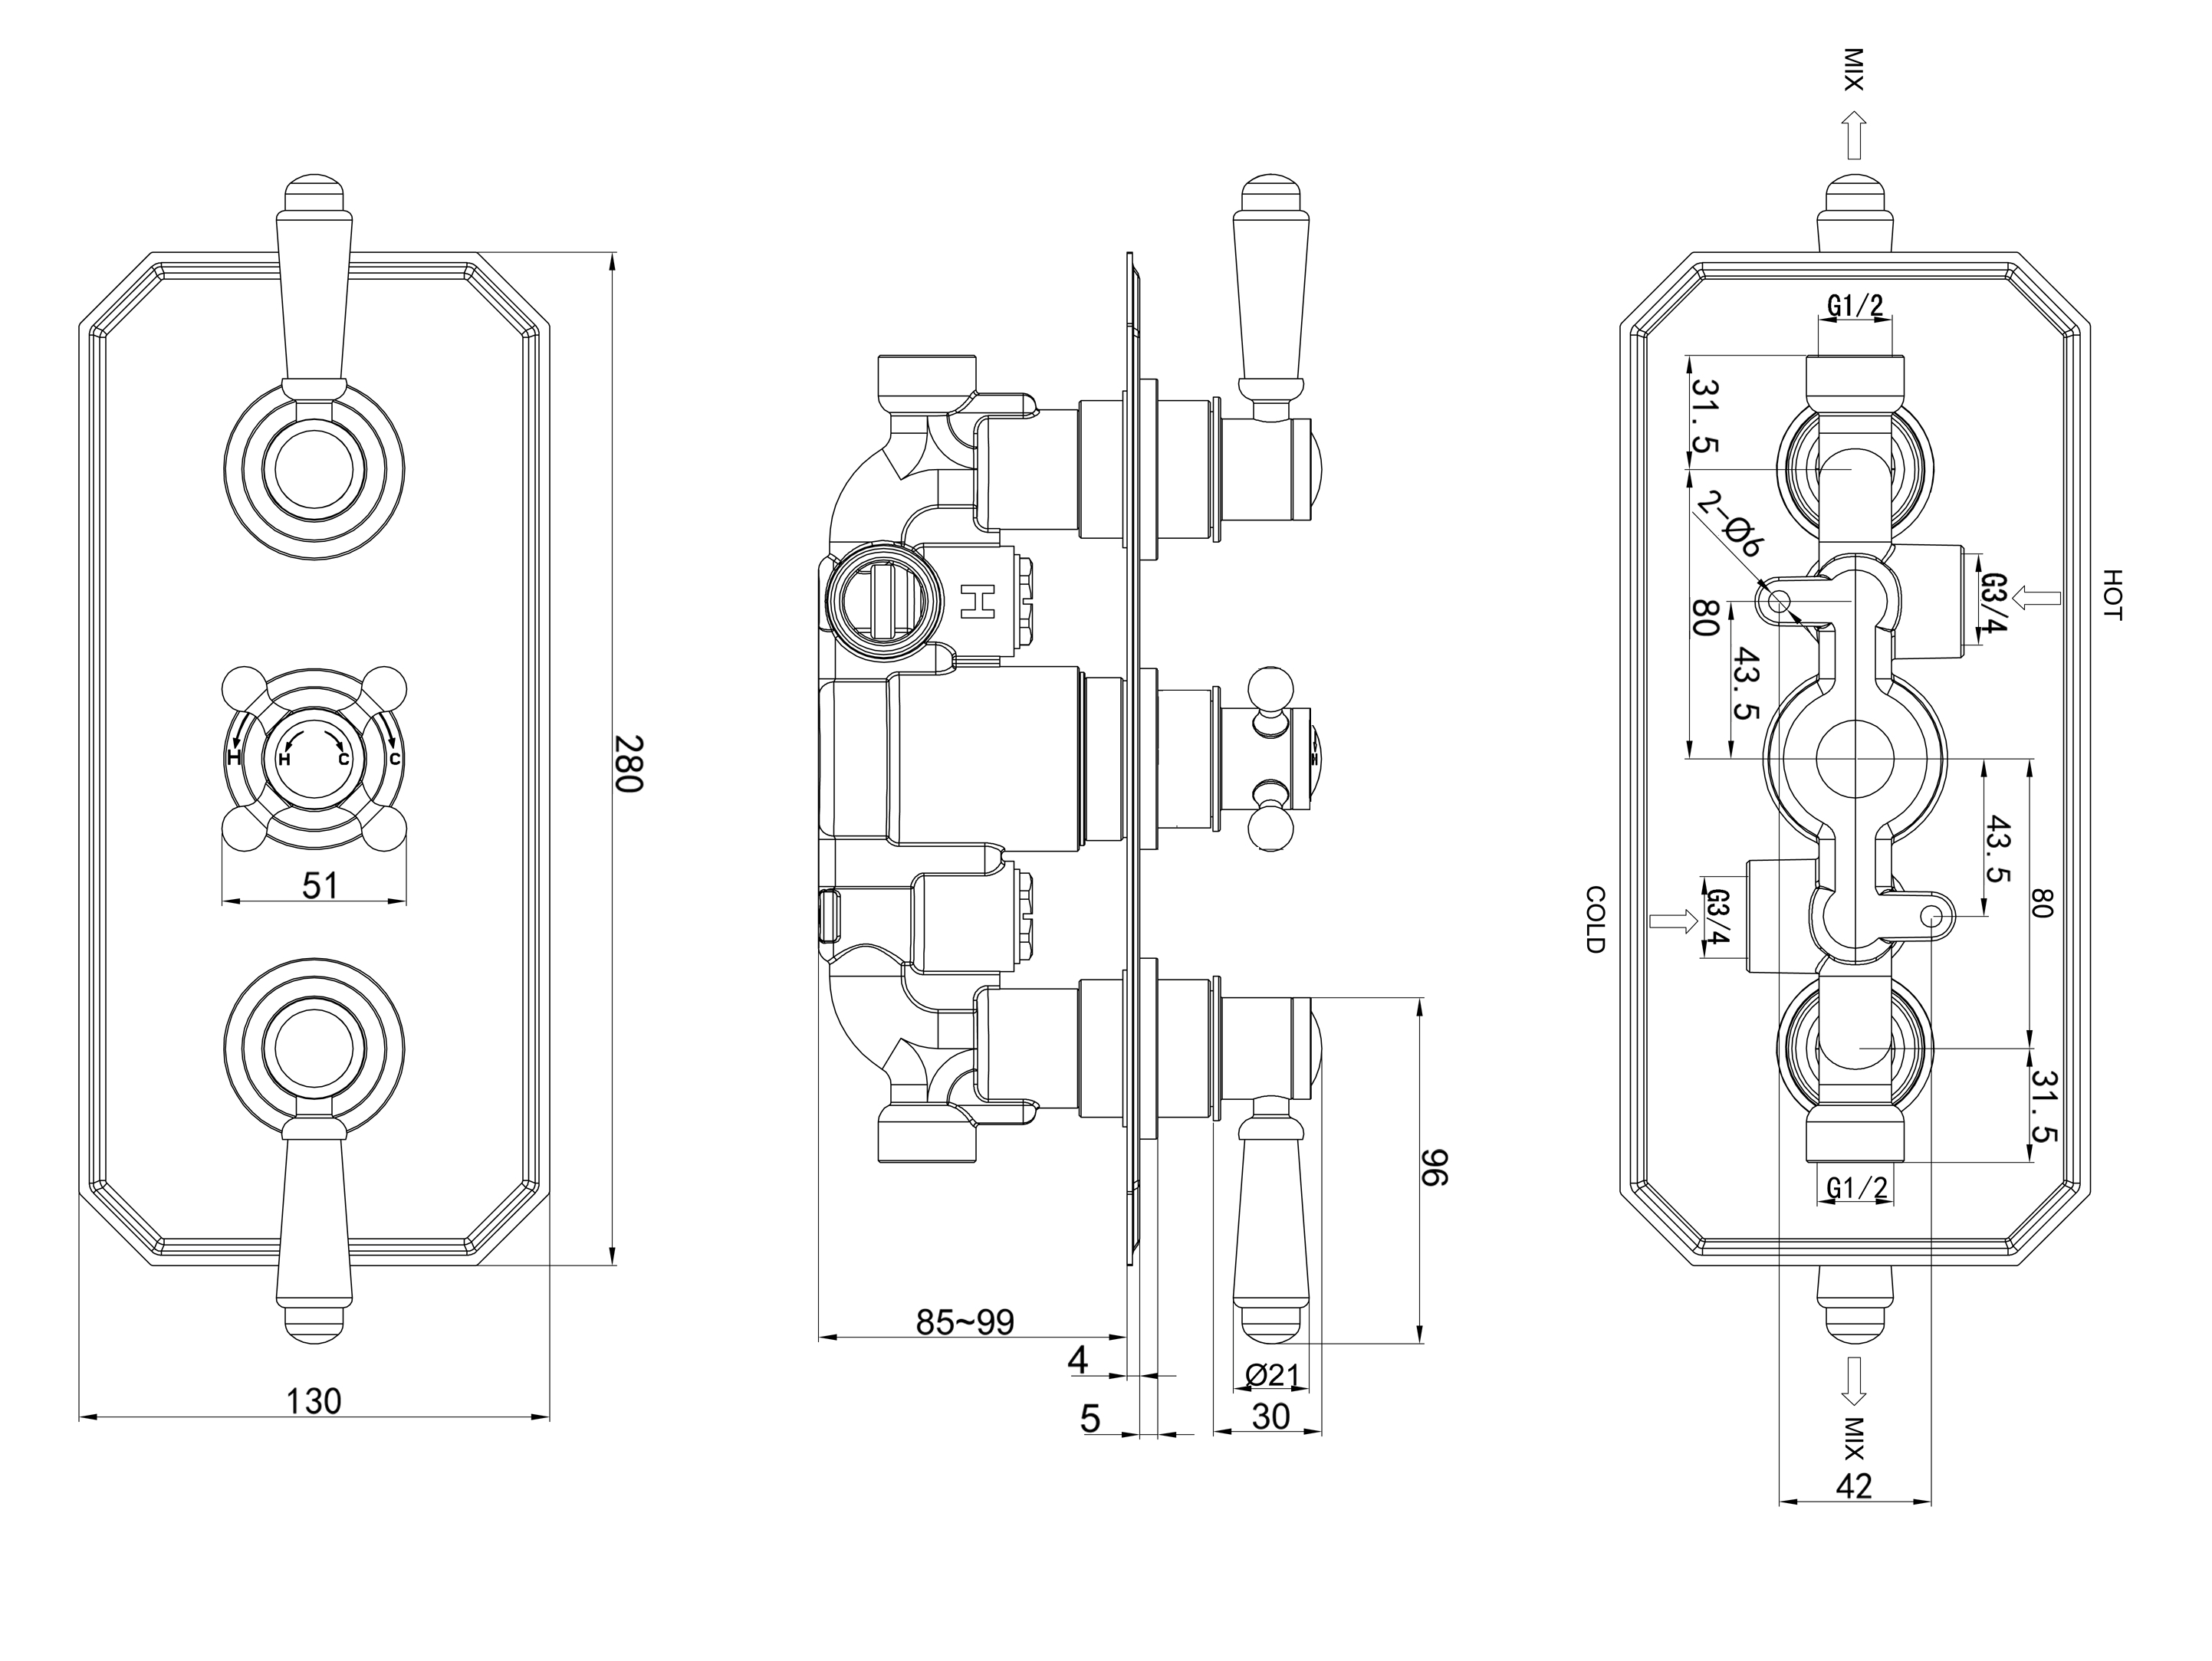 TECHNICAL DRAWING Schéma-robinet thermo-diana